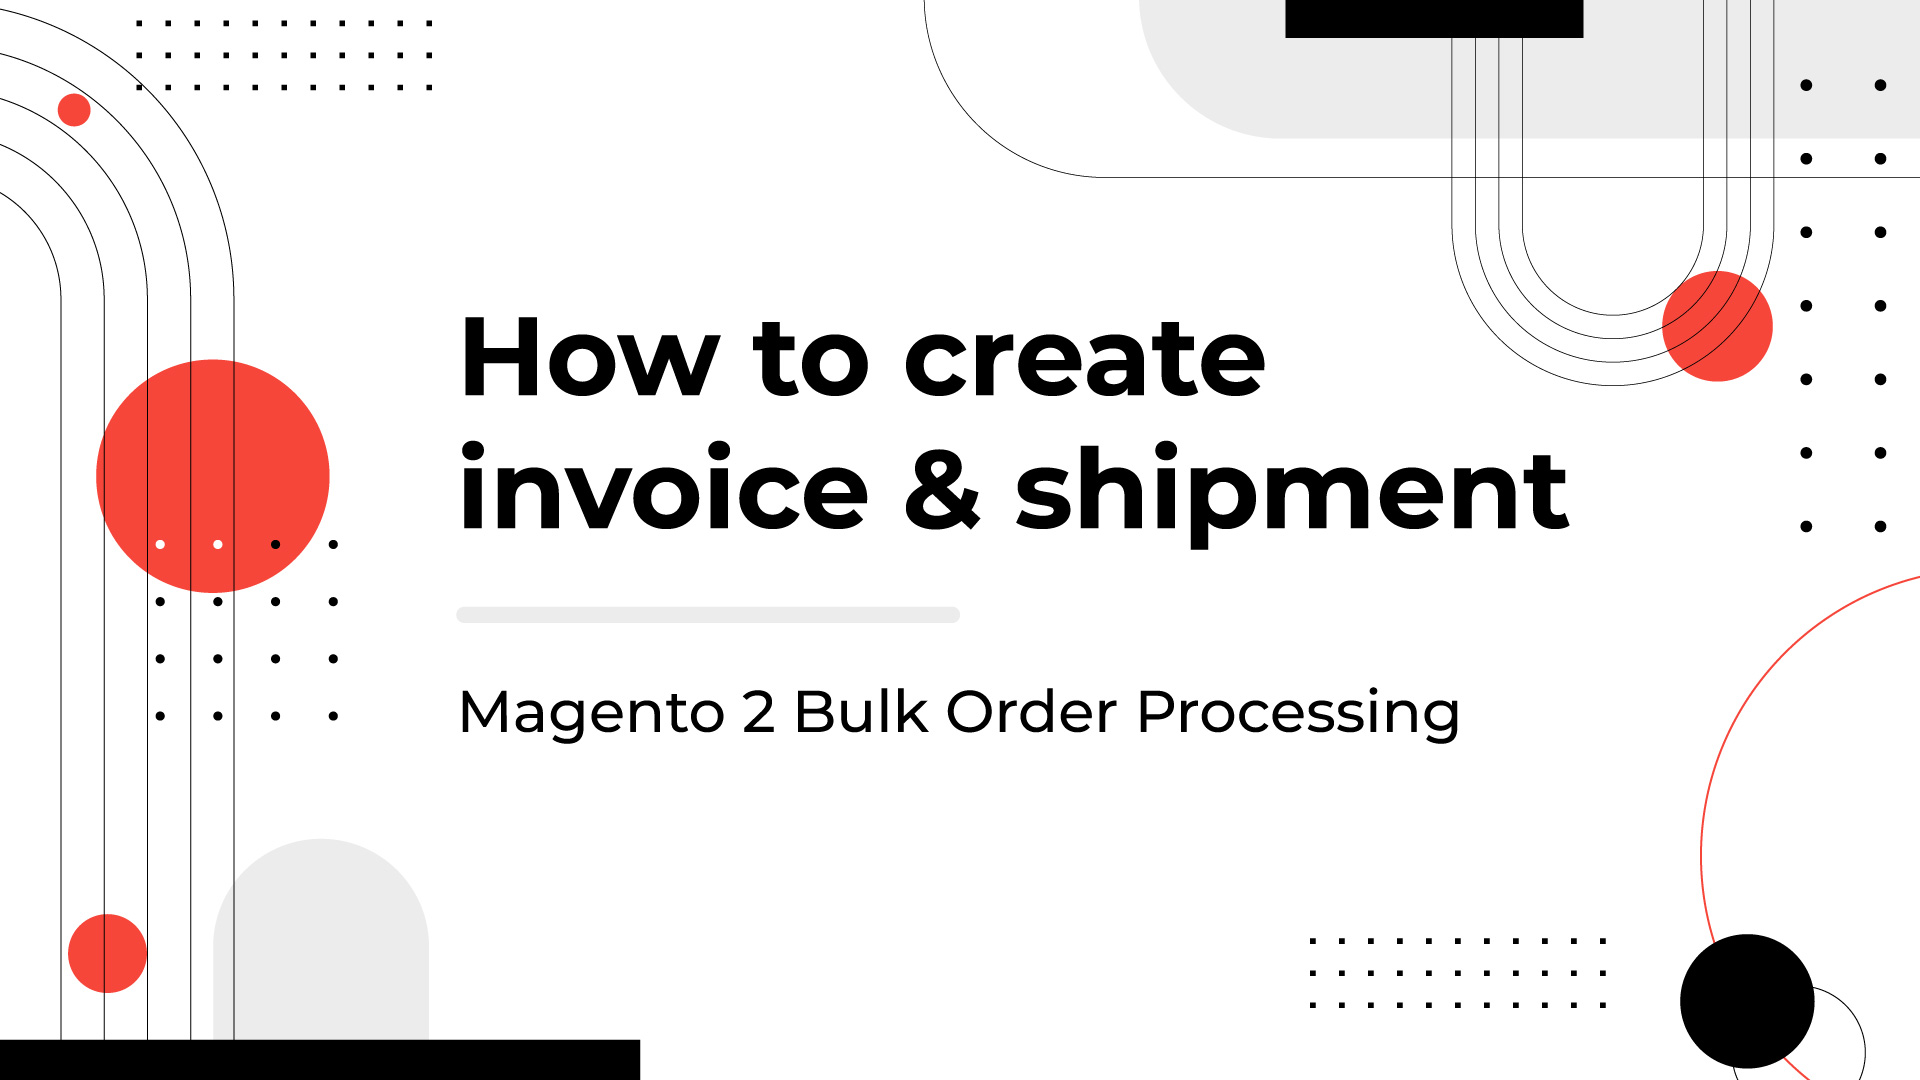 create invoice and shipment magento 2 bulk order processing